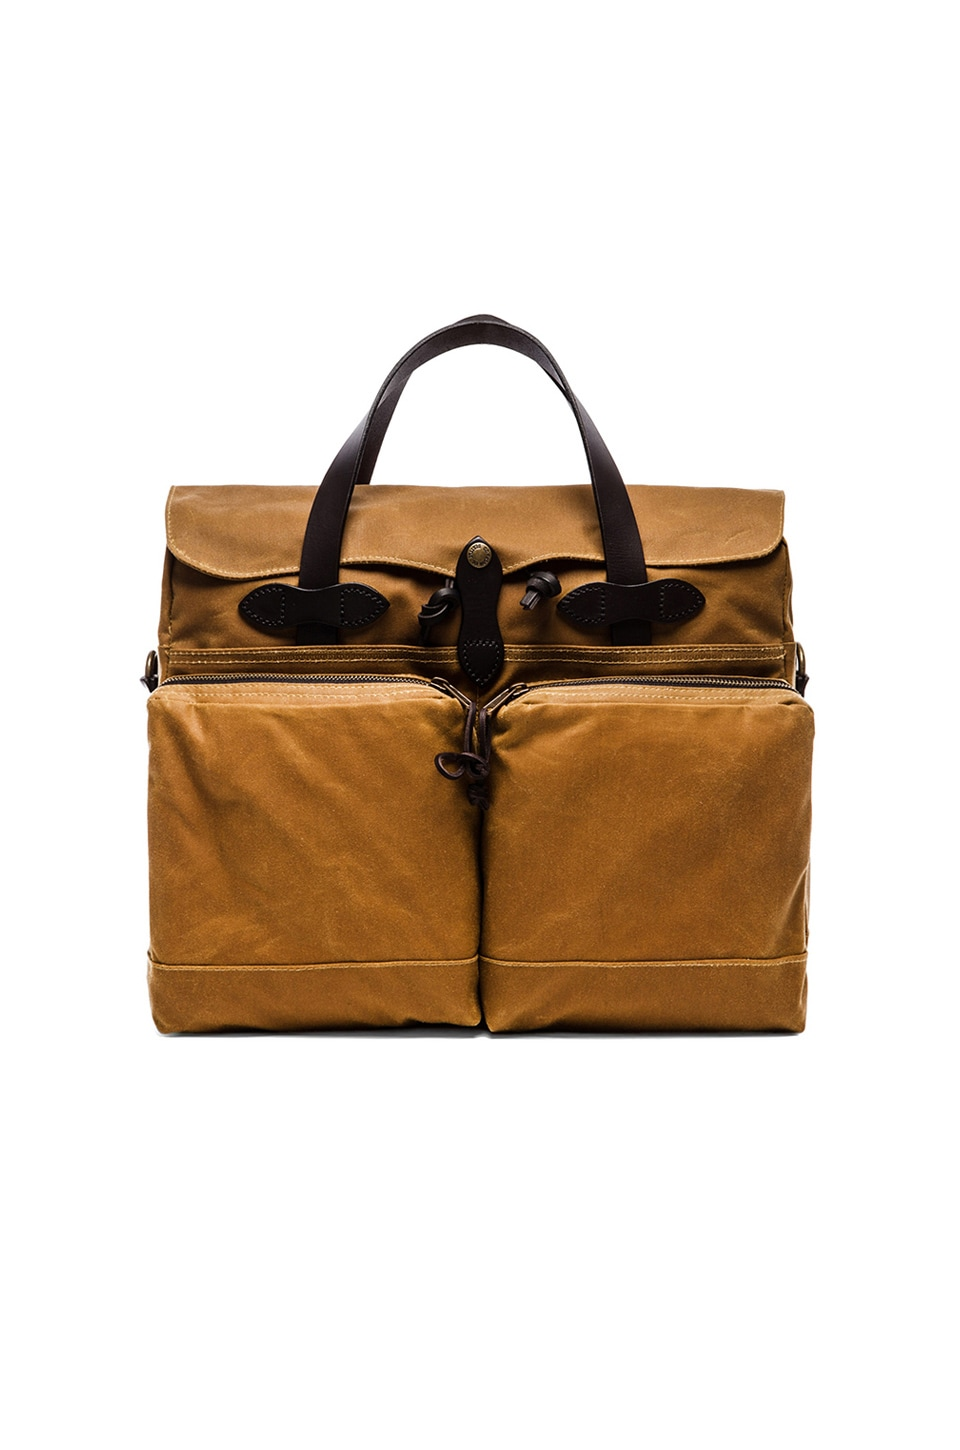 Filson 24 Hr Tin Cloth Briefcase in Dark Tan